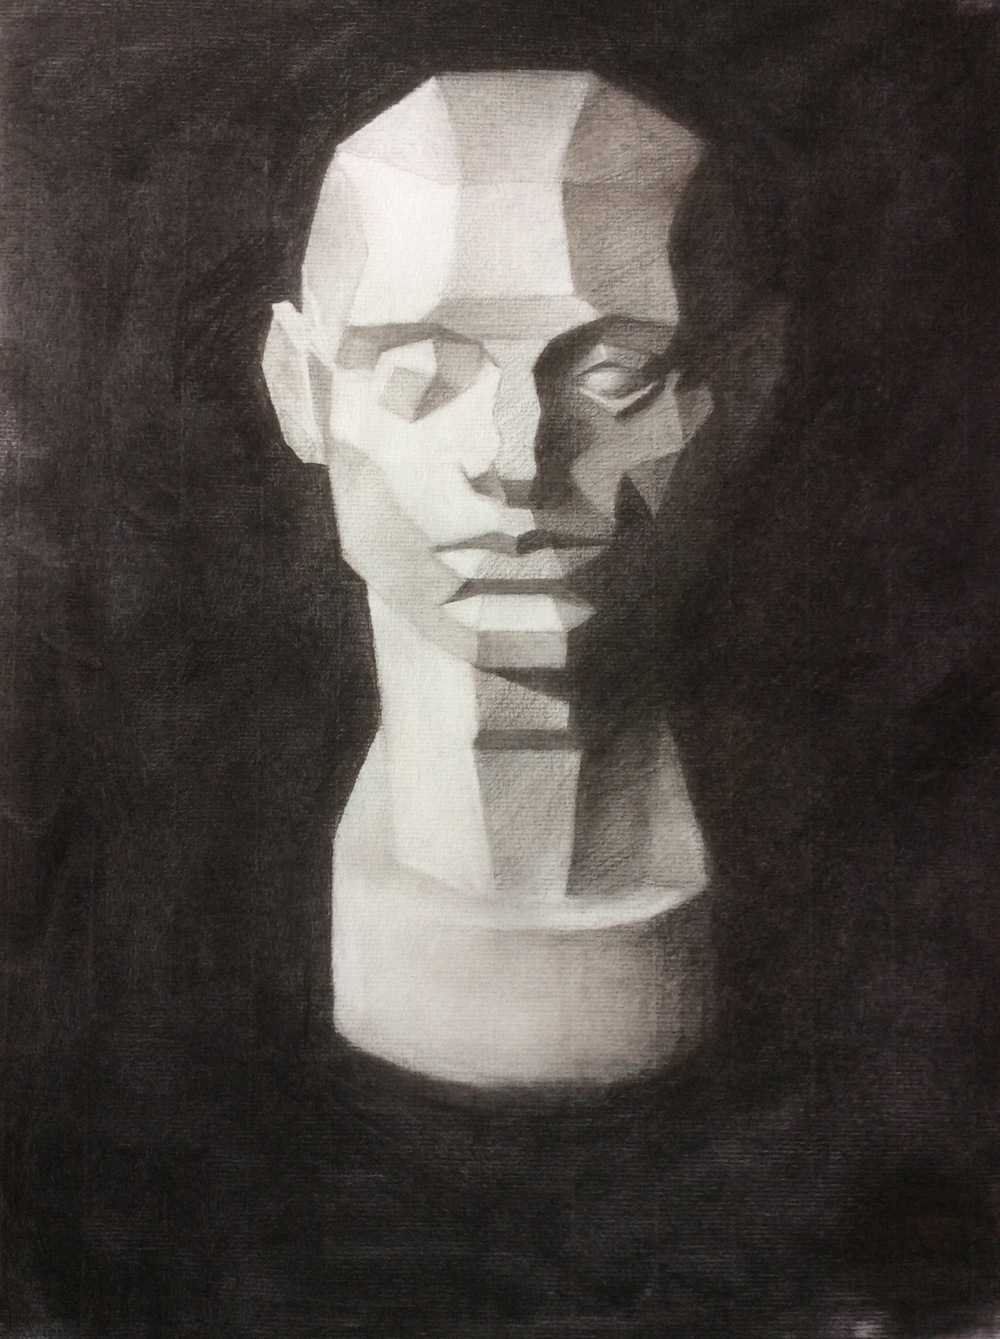 Technohead   Charcoal on paper